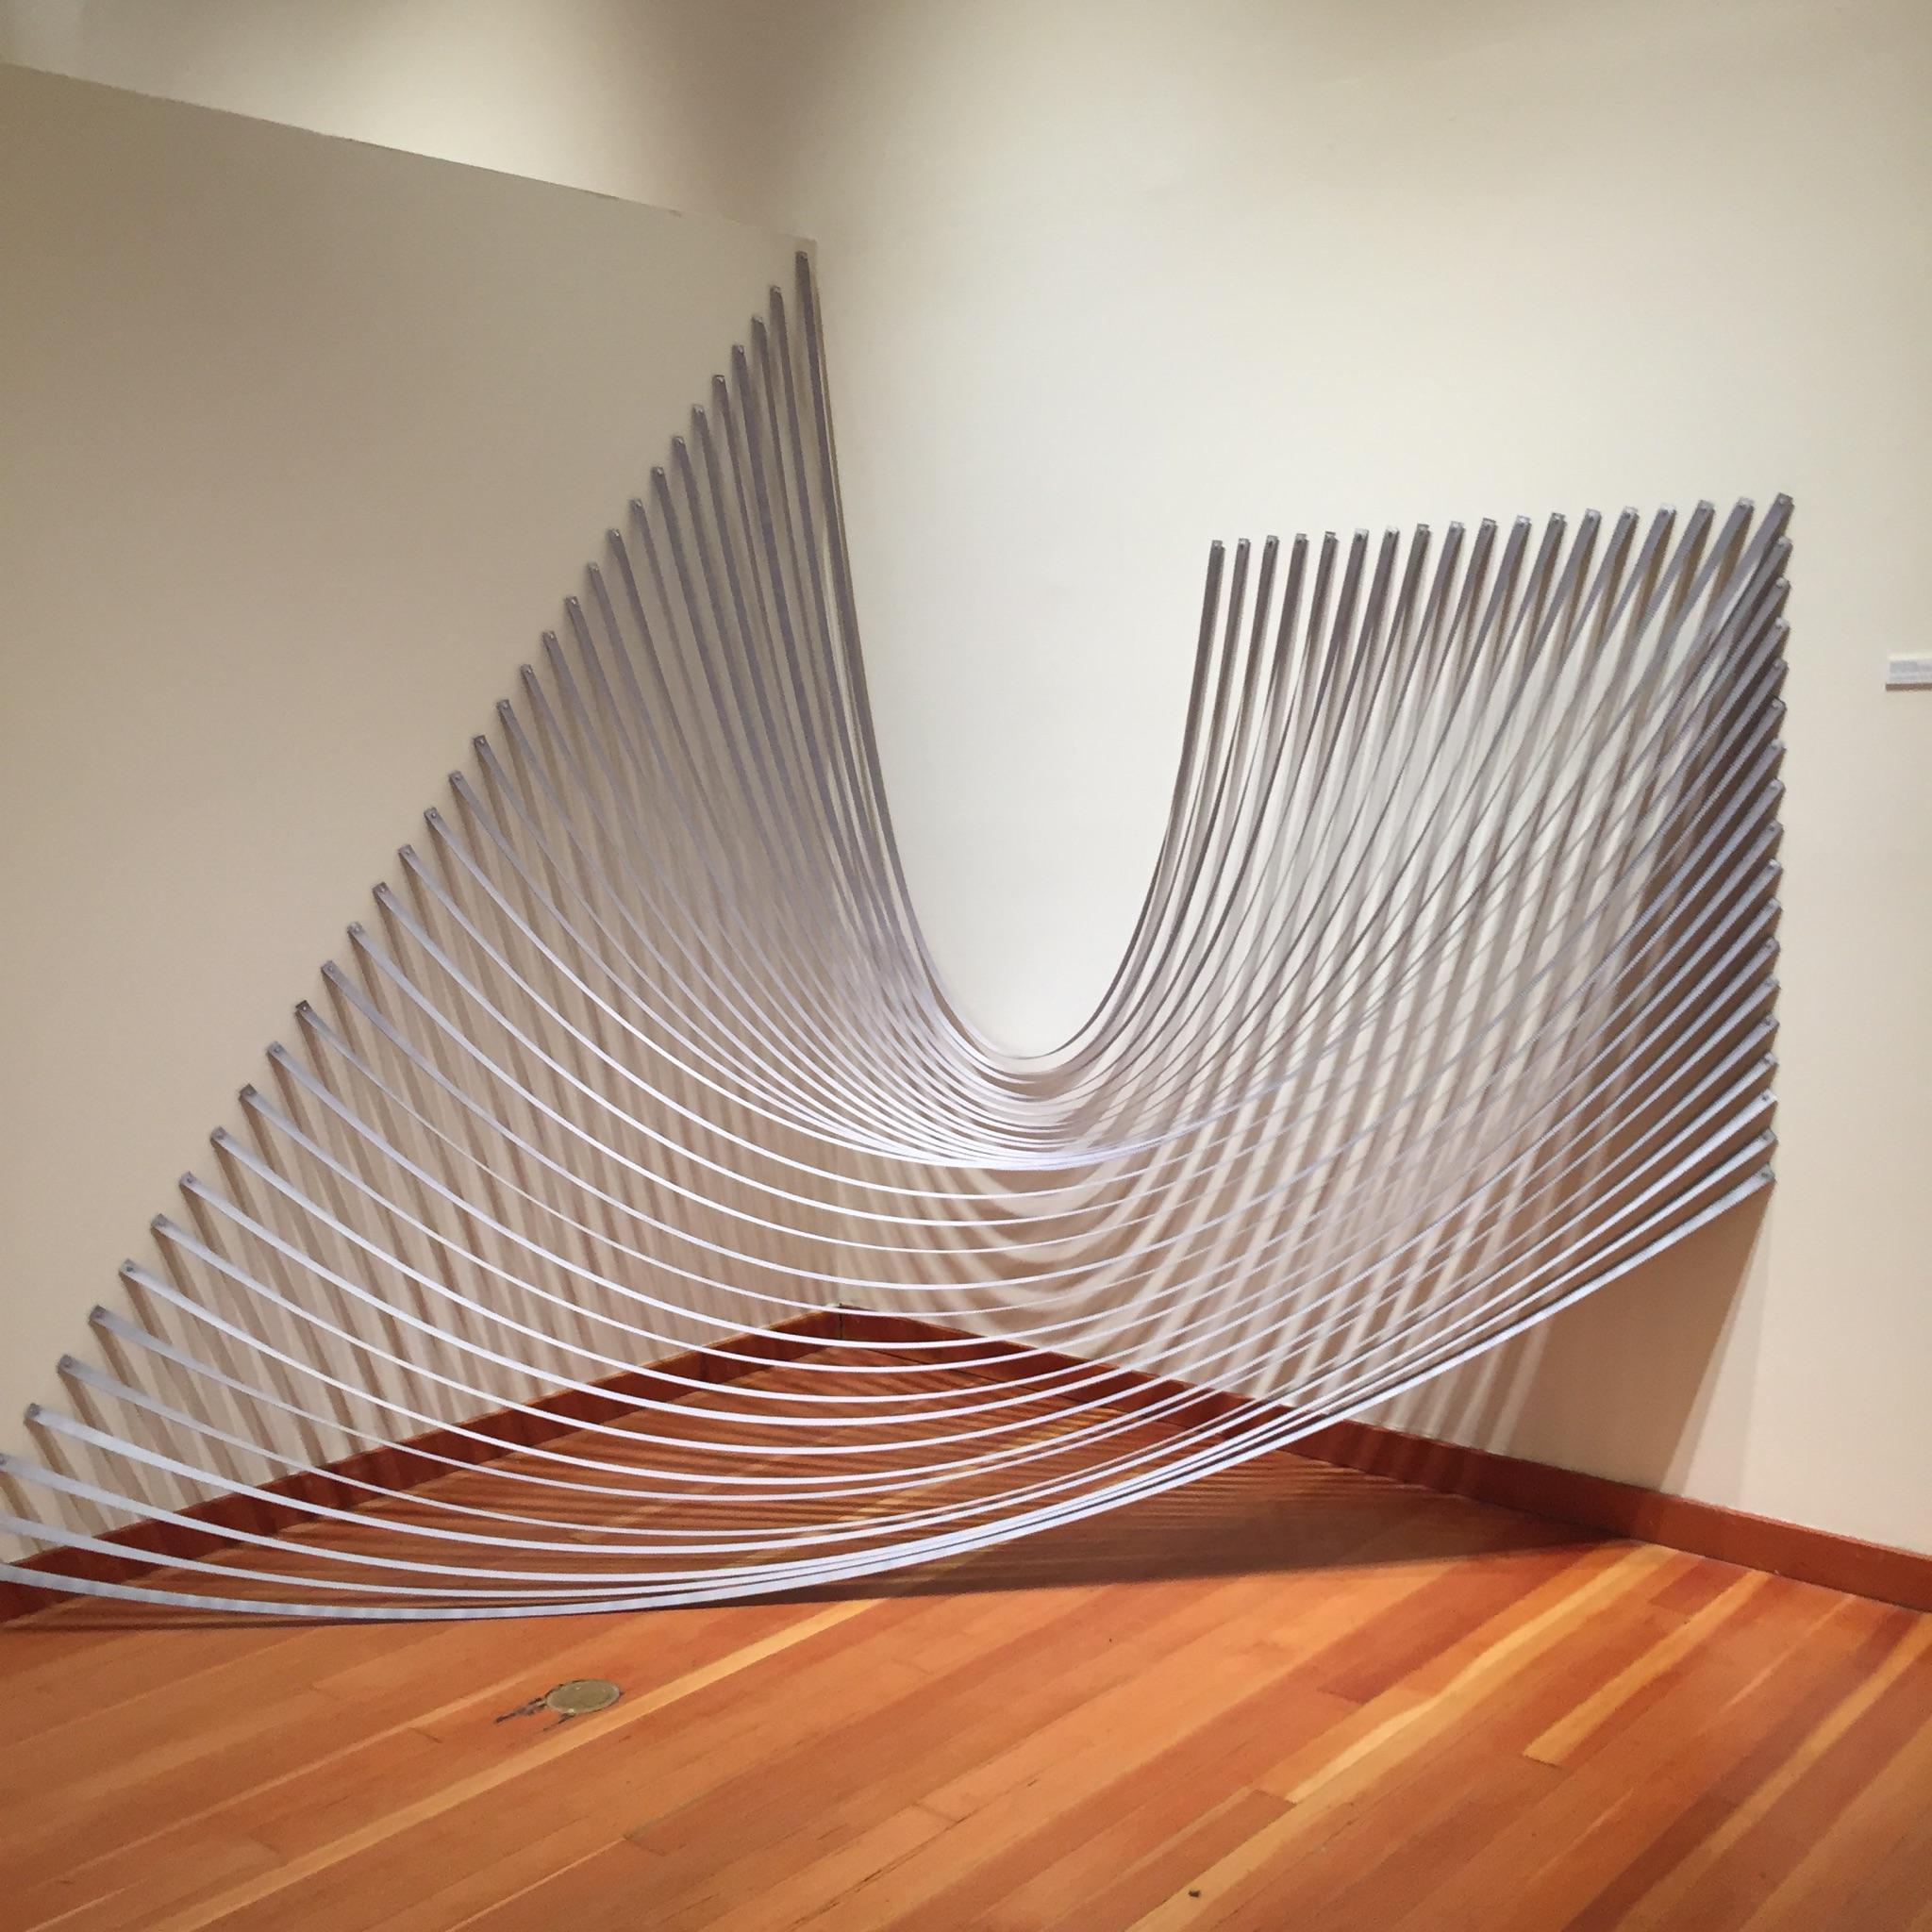 STAR // Justin Freeman  The Sonoma State University Art Gallery featured three professional artist's work with a common theme: the use of lines.